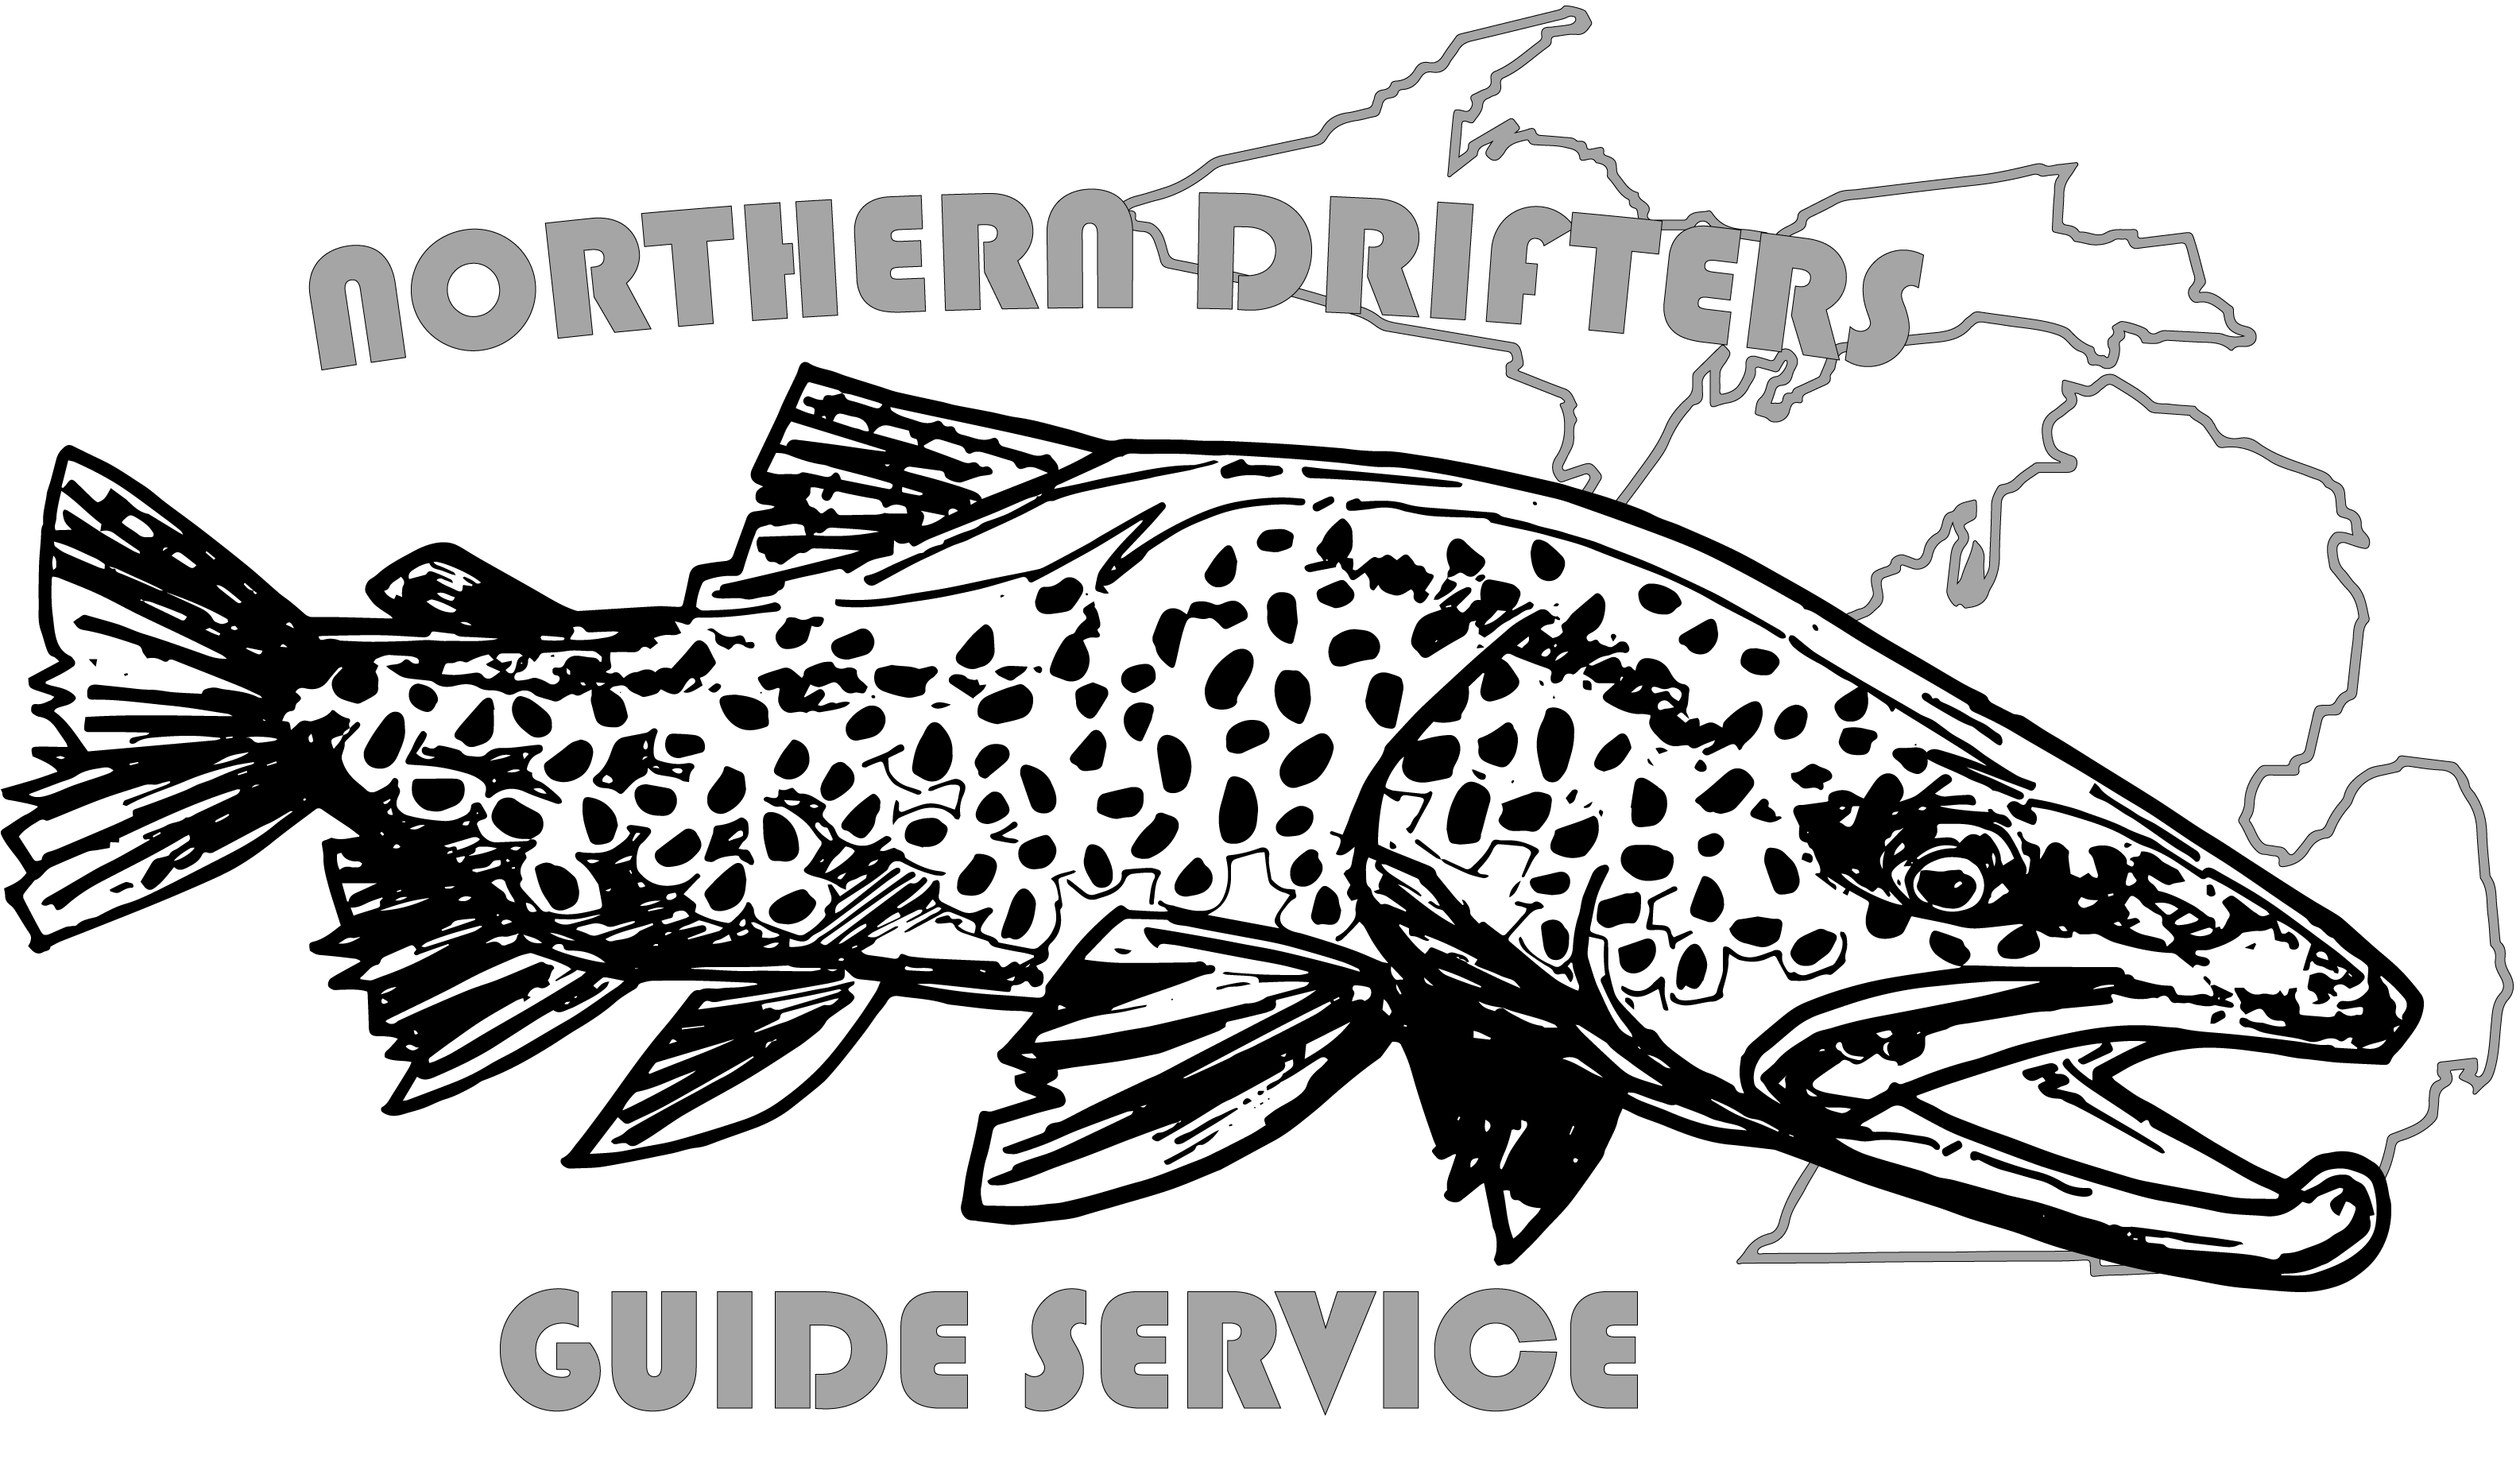 Northern Drifters